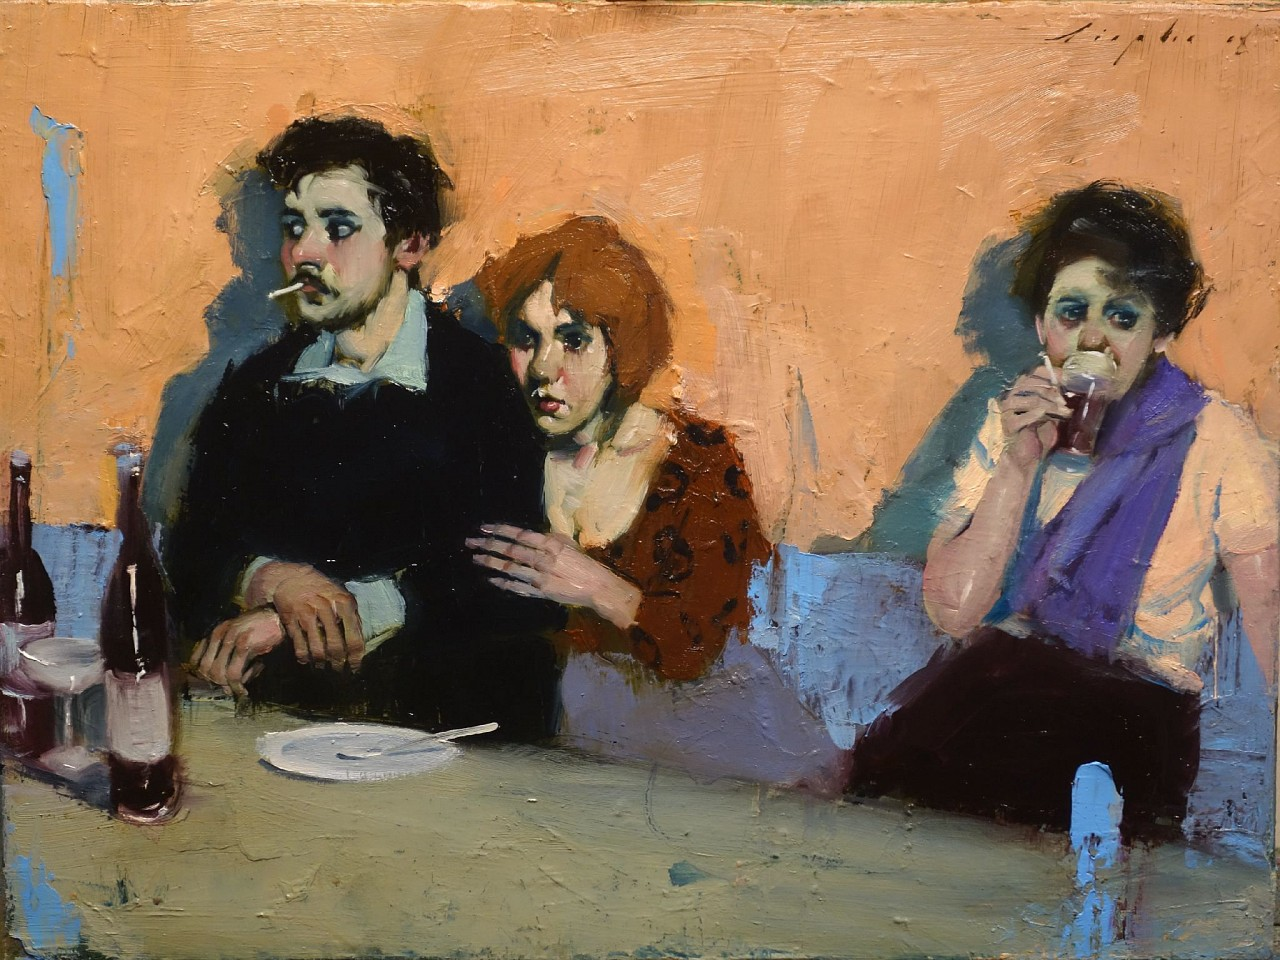 Malcolm Liepke, Different Stories 2018, oil on canvas